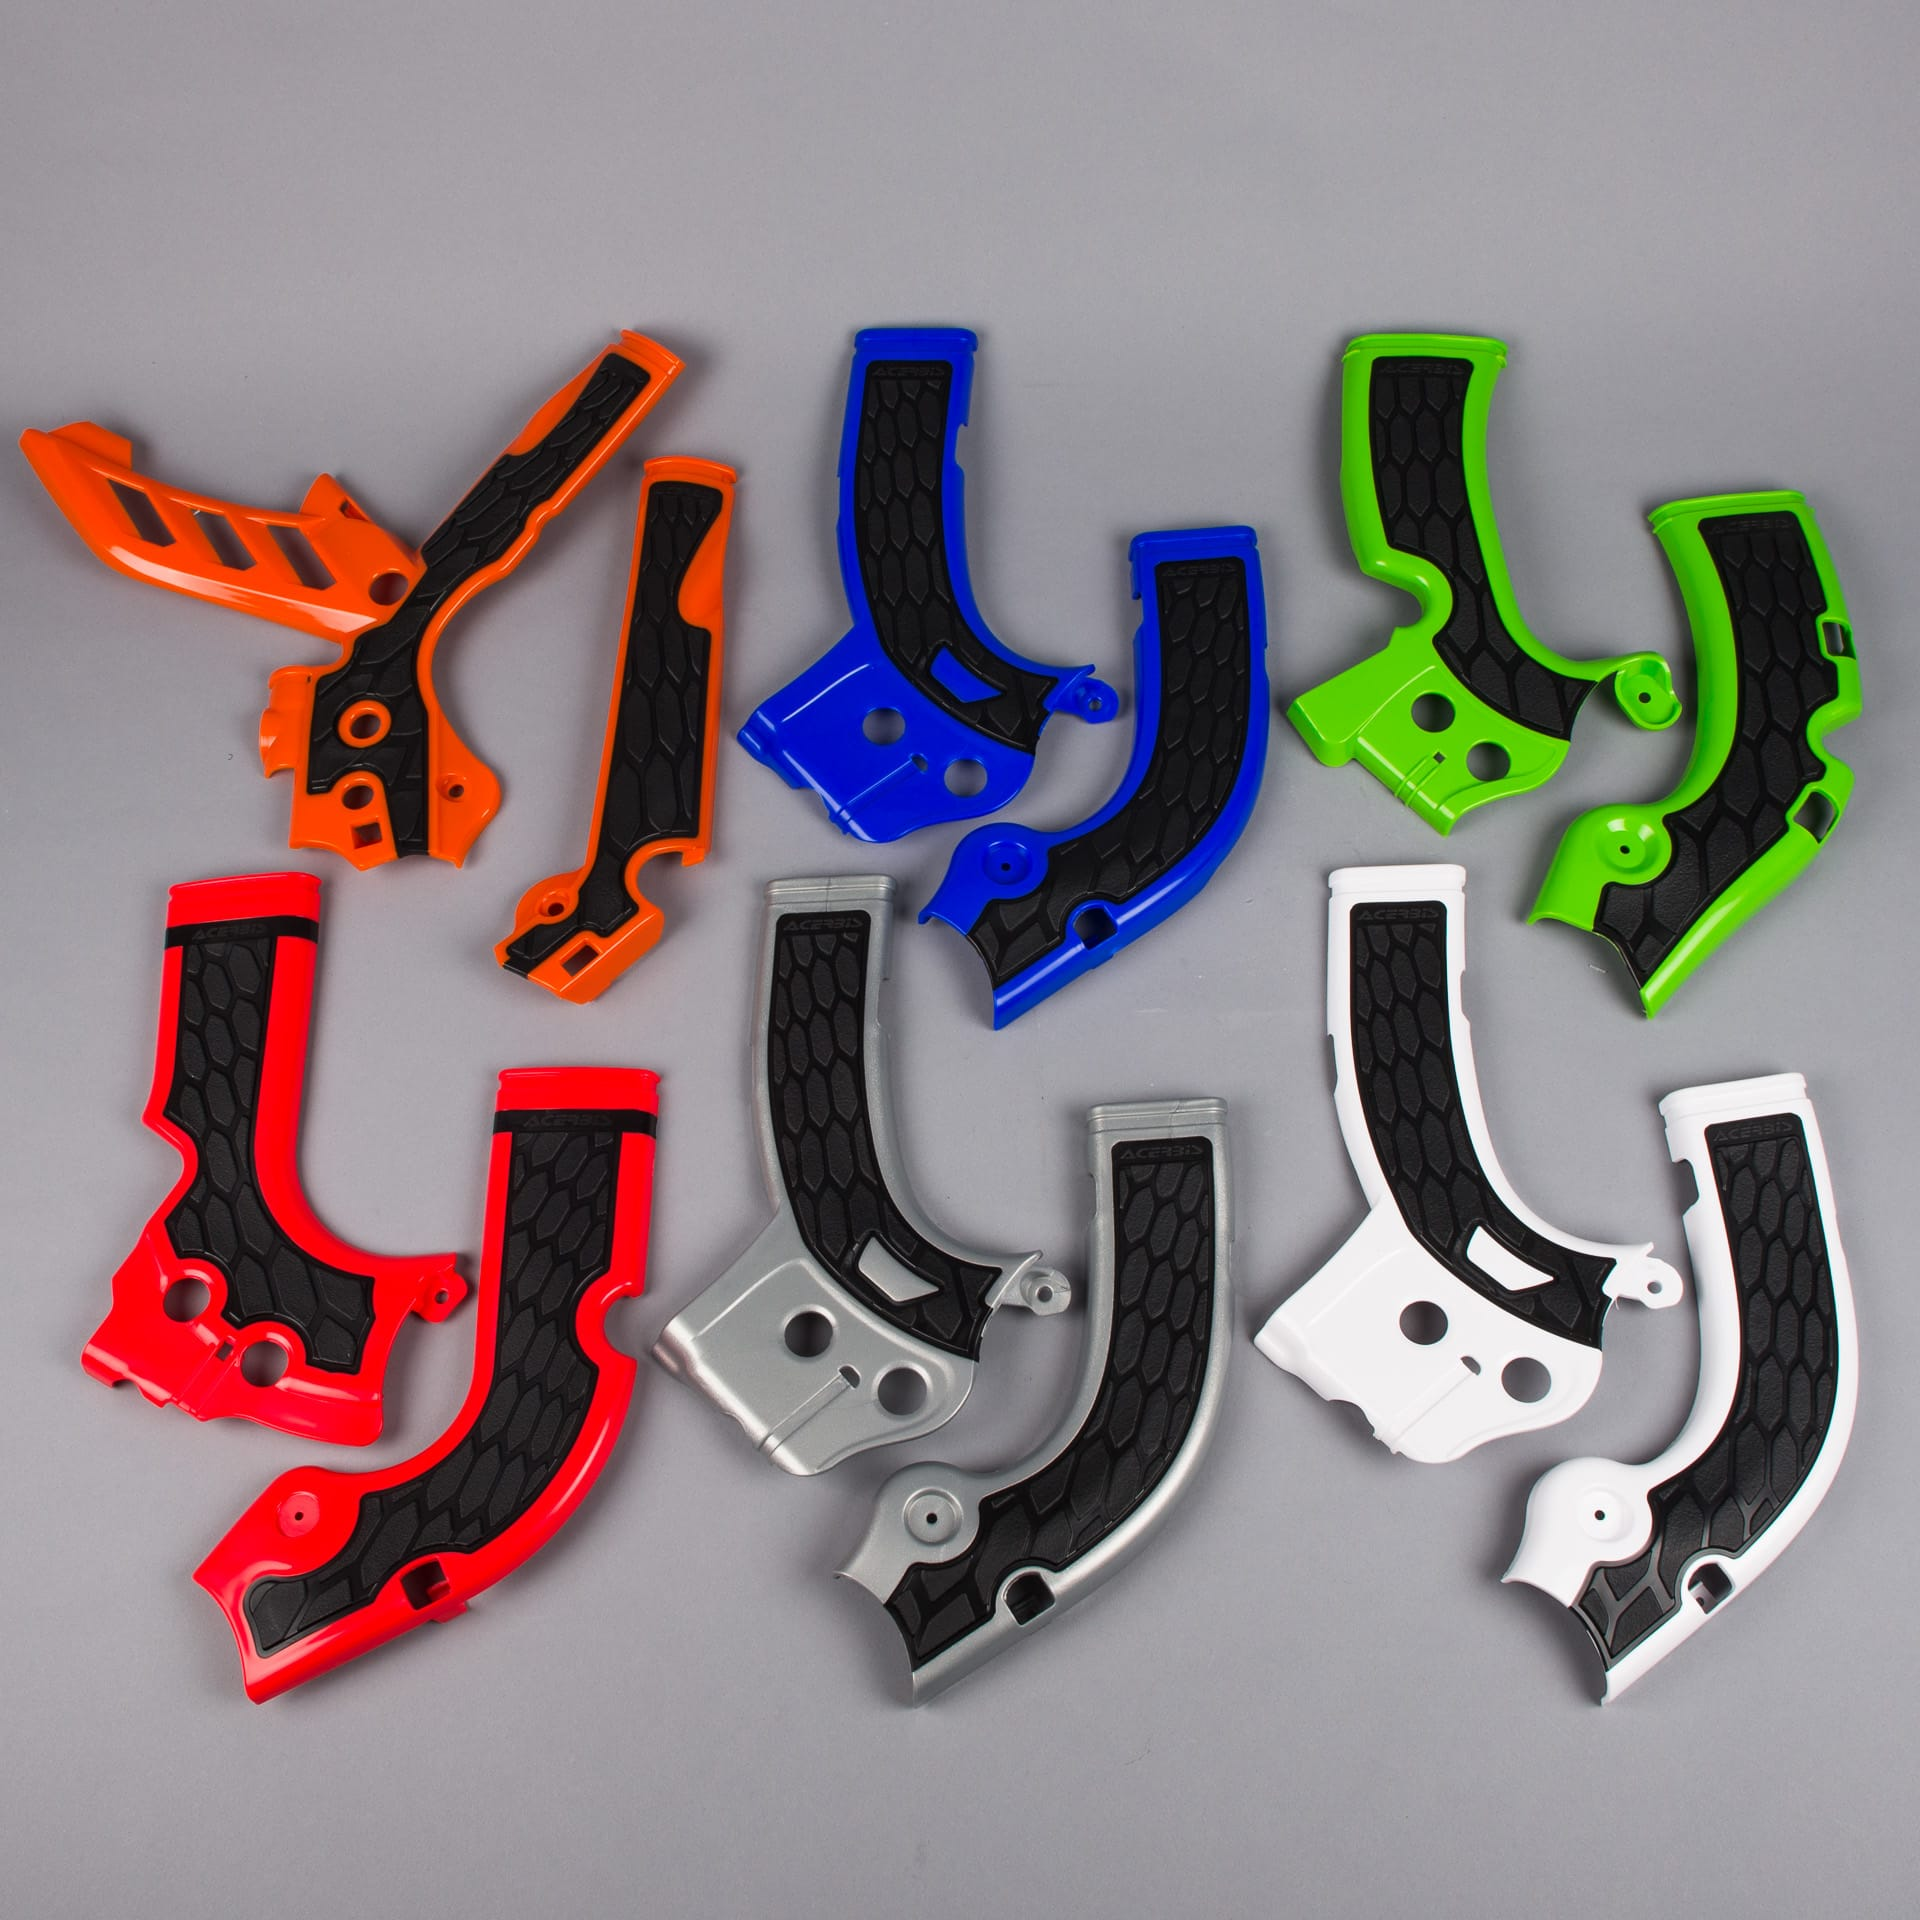 ACERBIS KTM 65 AND HUSQUAVANA 65 FRAME GUARDS NOW AVAILABLE IN 2 COLOURS.